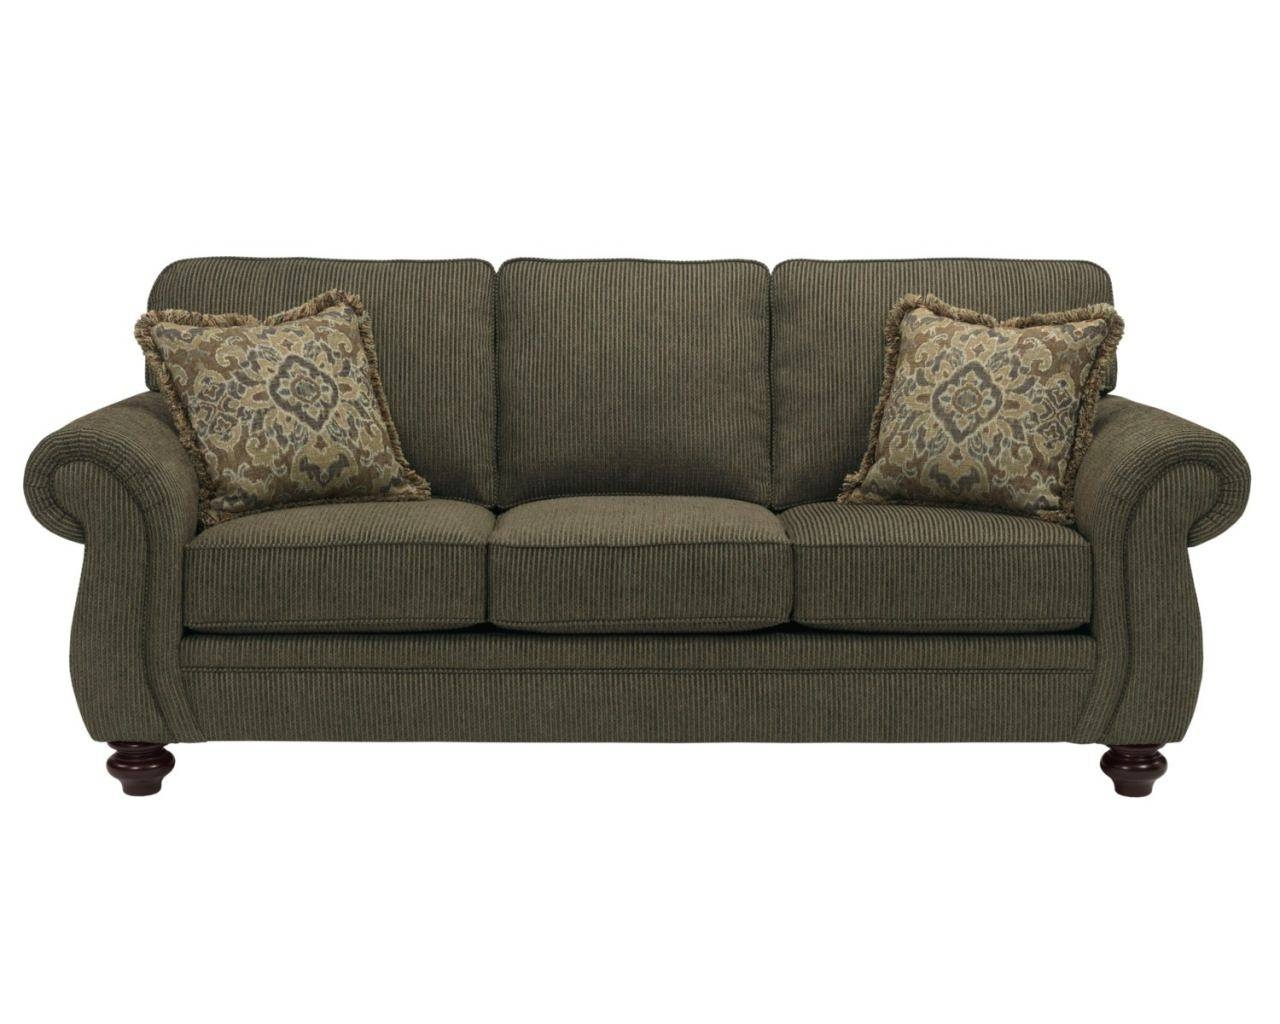 Express Cassandra Sofa In Affinity 3688-3Q Clearance pertaining to Broyhill Sectional Sofas (Image 20 of 30)